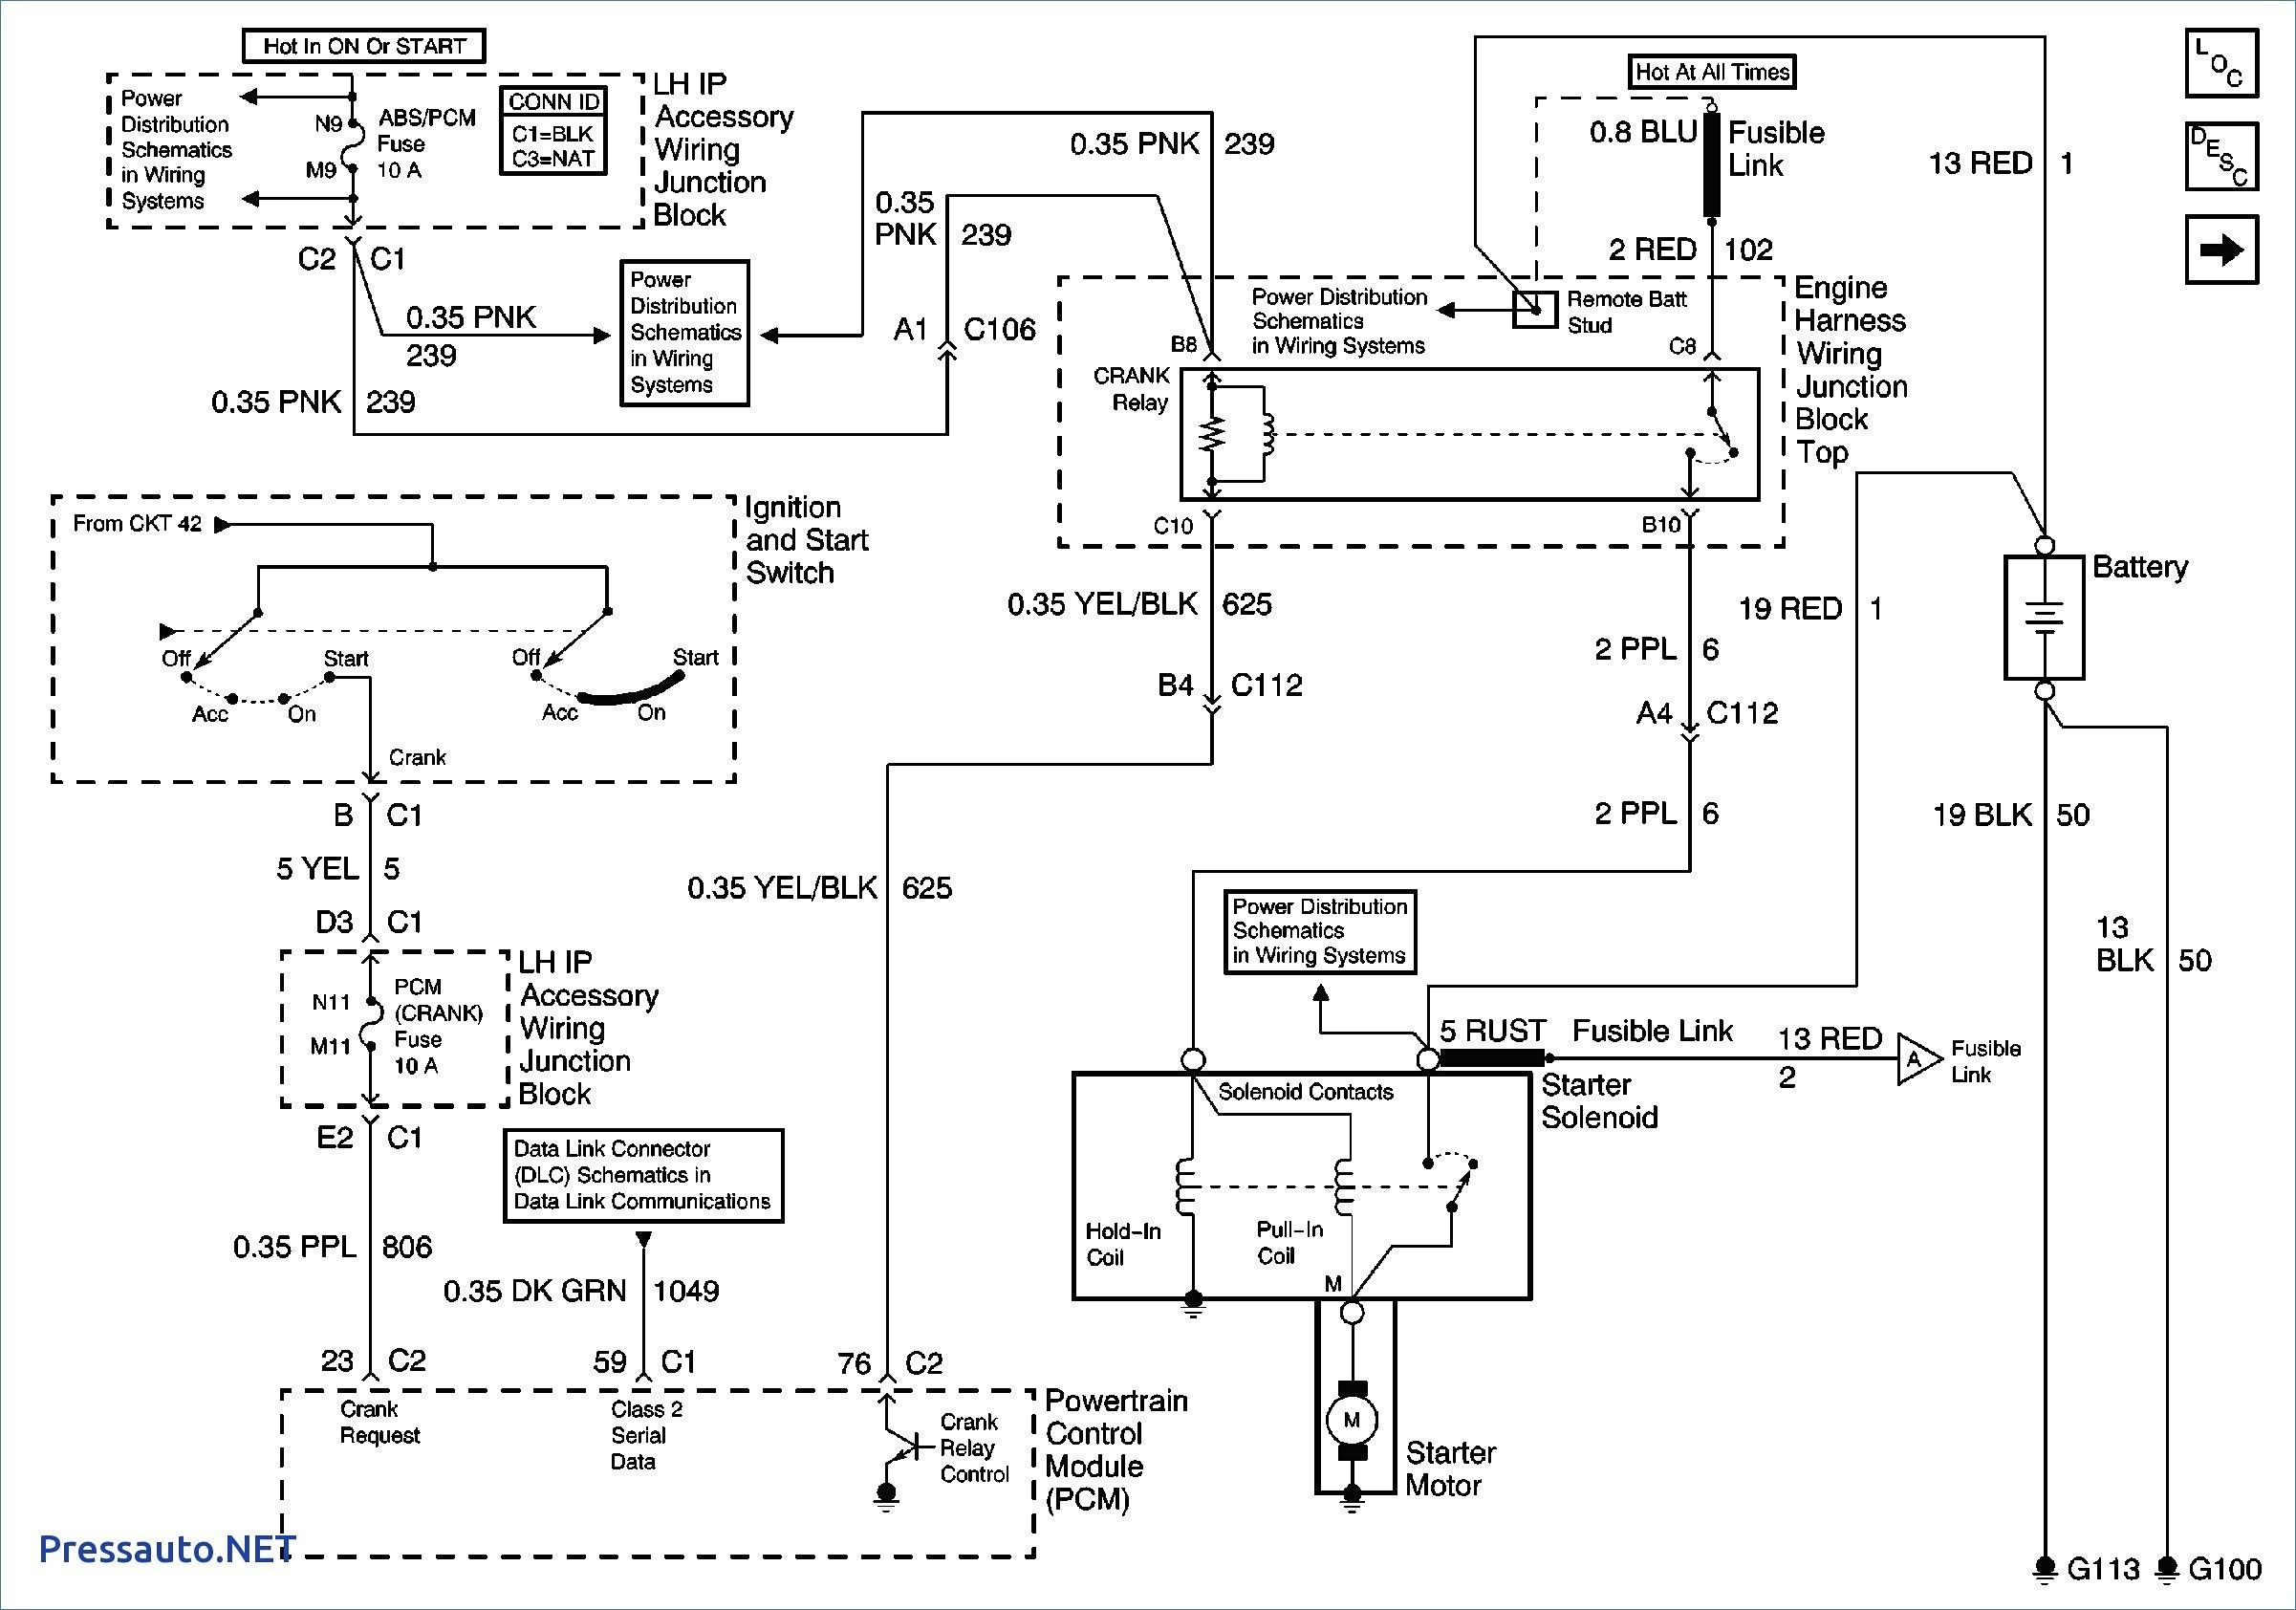 Beautiful Wiring Diagram Motor Starter Diagrams Digramssample Diagramimages Wiringdiagramsample Wiringdiagram Check More At Https No Diagram Impala Wire